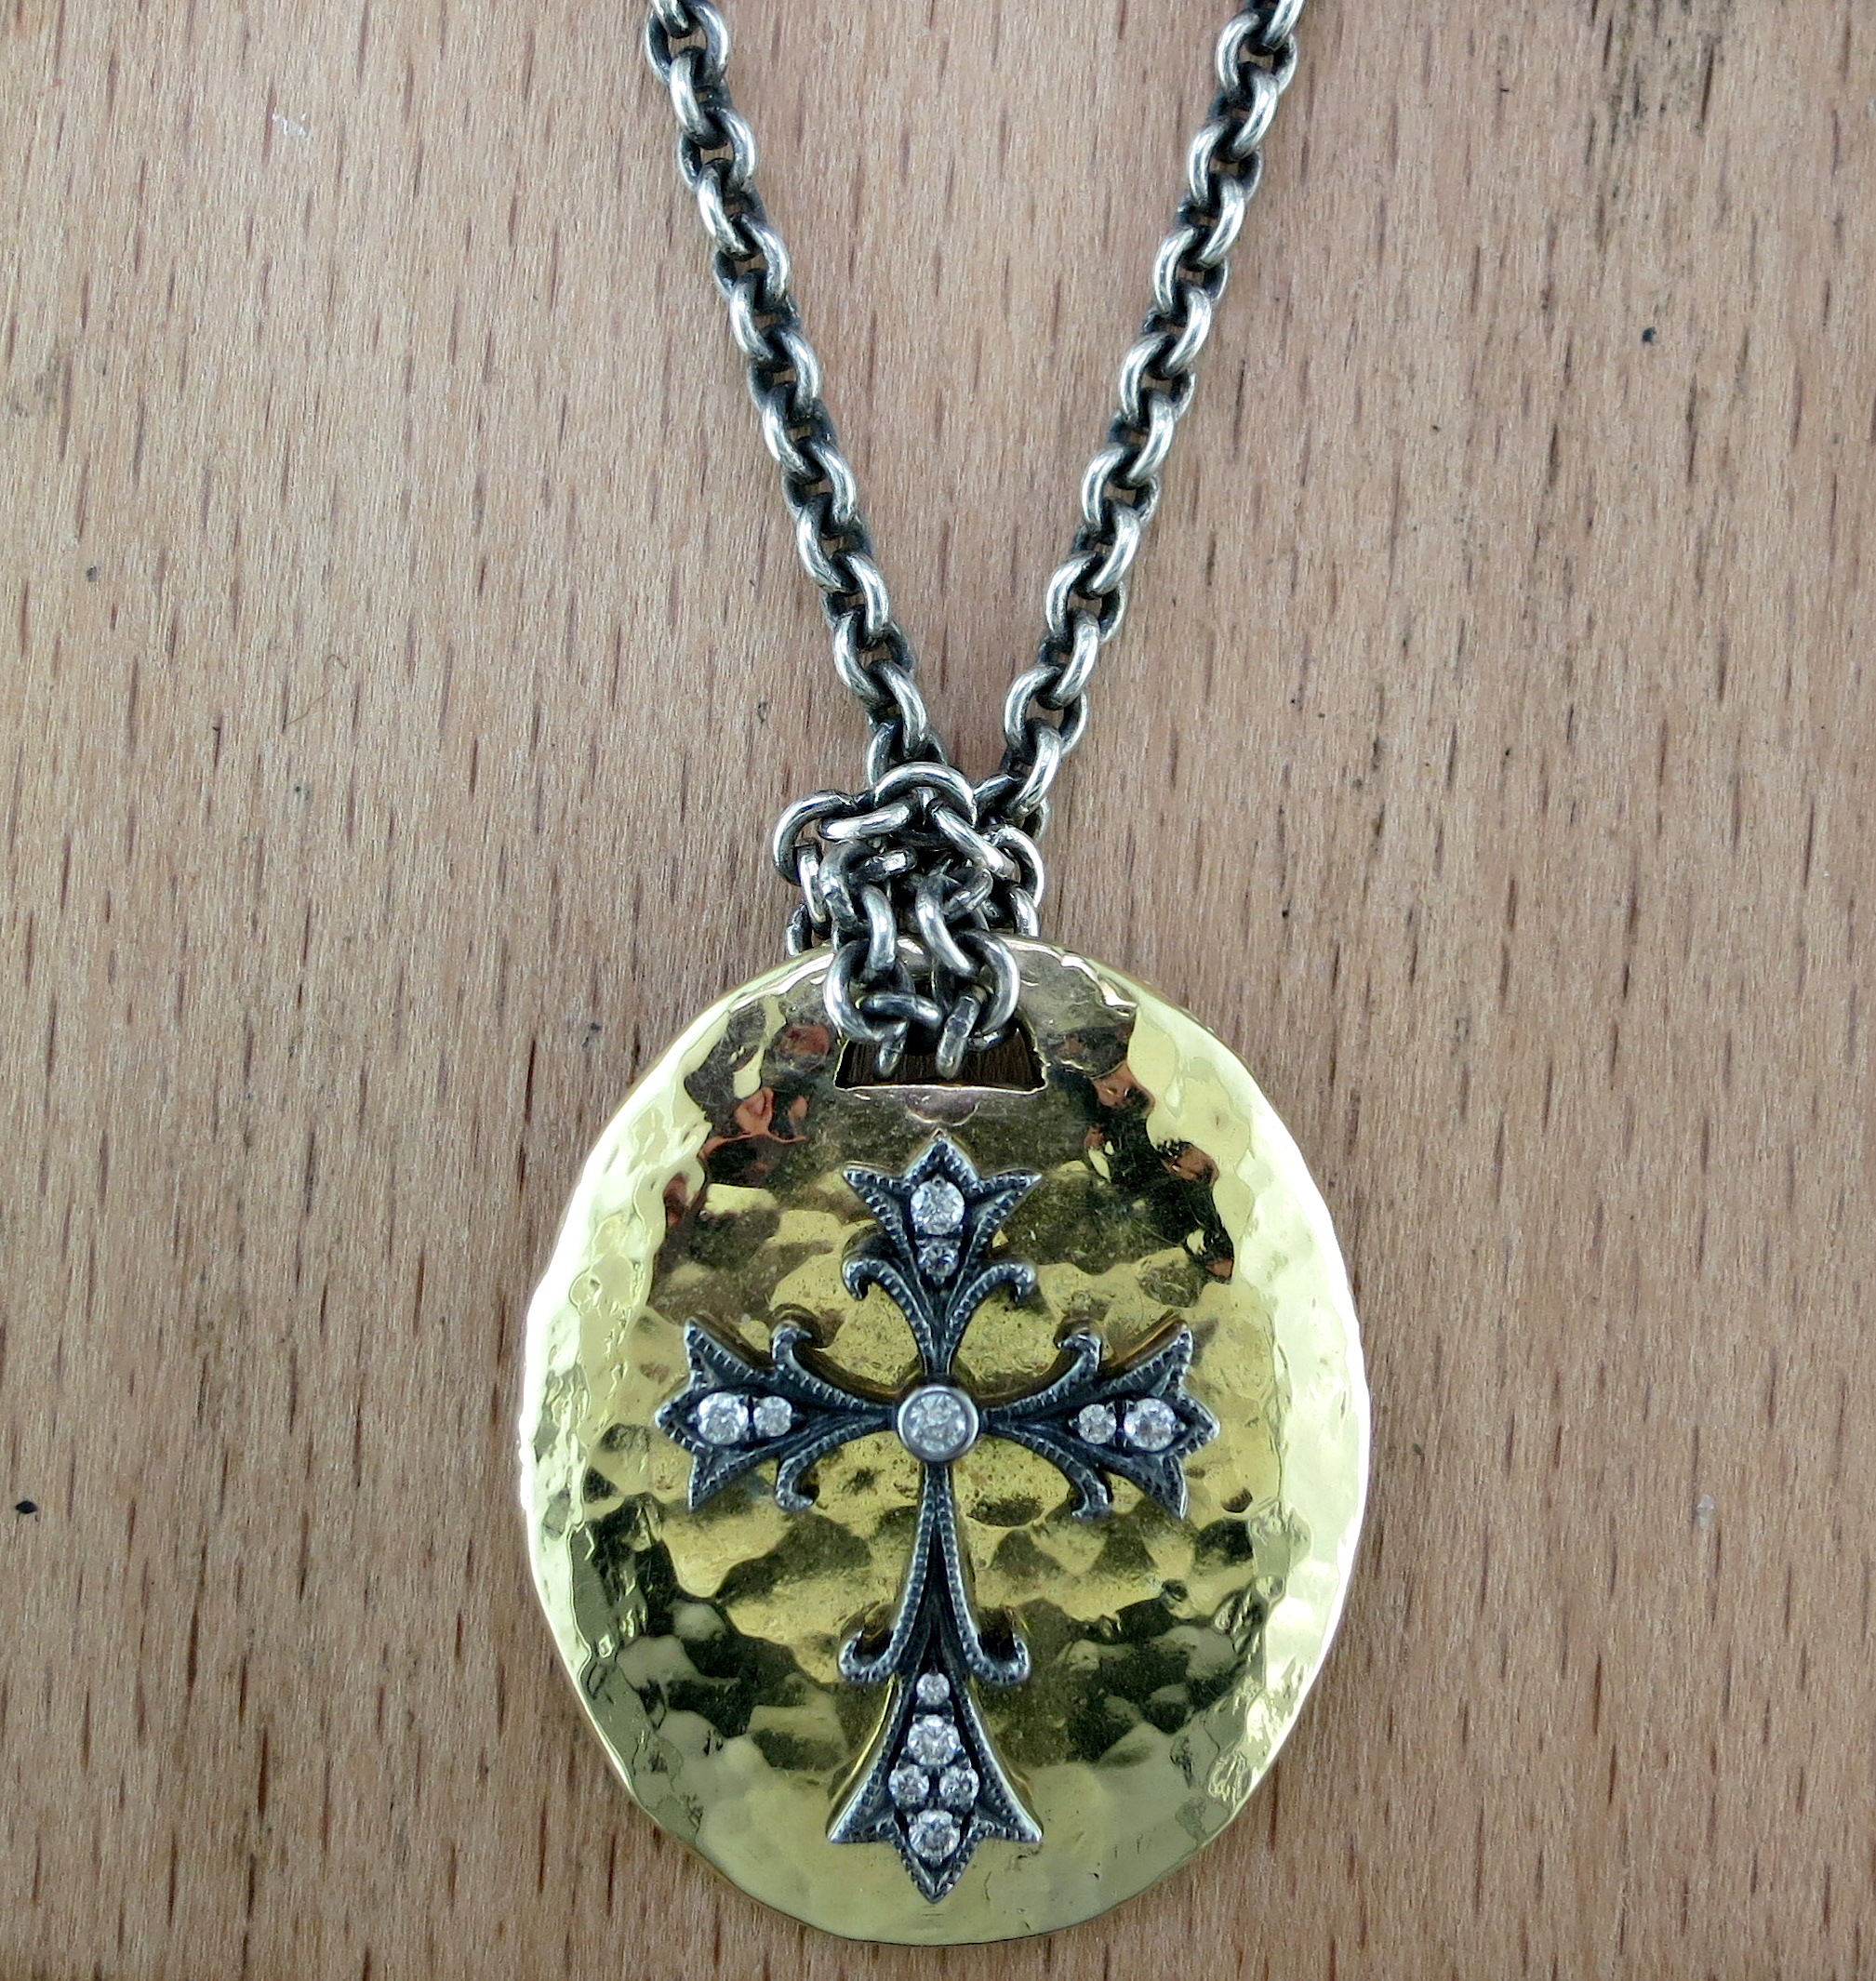 Hand Forged Silver, 18 Karat Yellow Gold and White Diamond Pendant on a Hand Forged Silver Chain (MB1448)